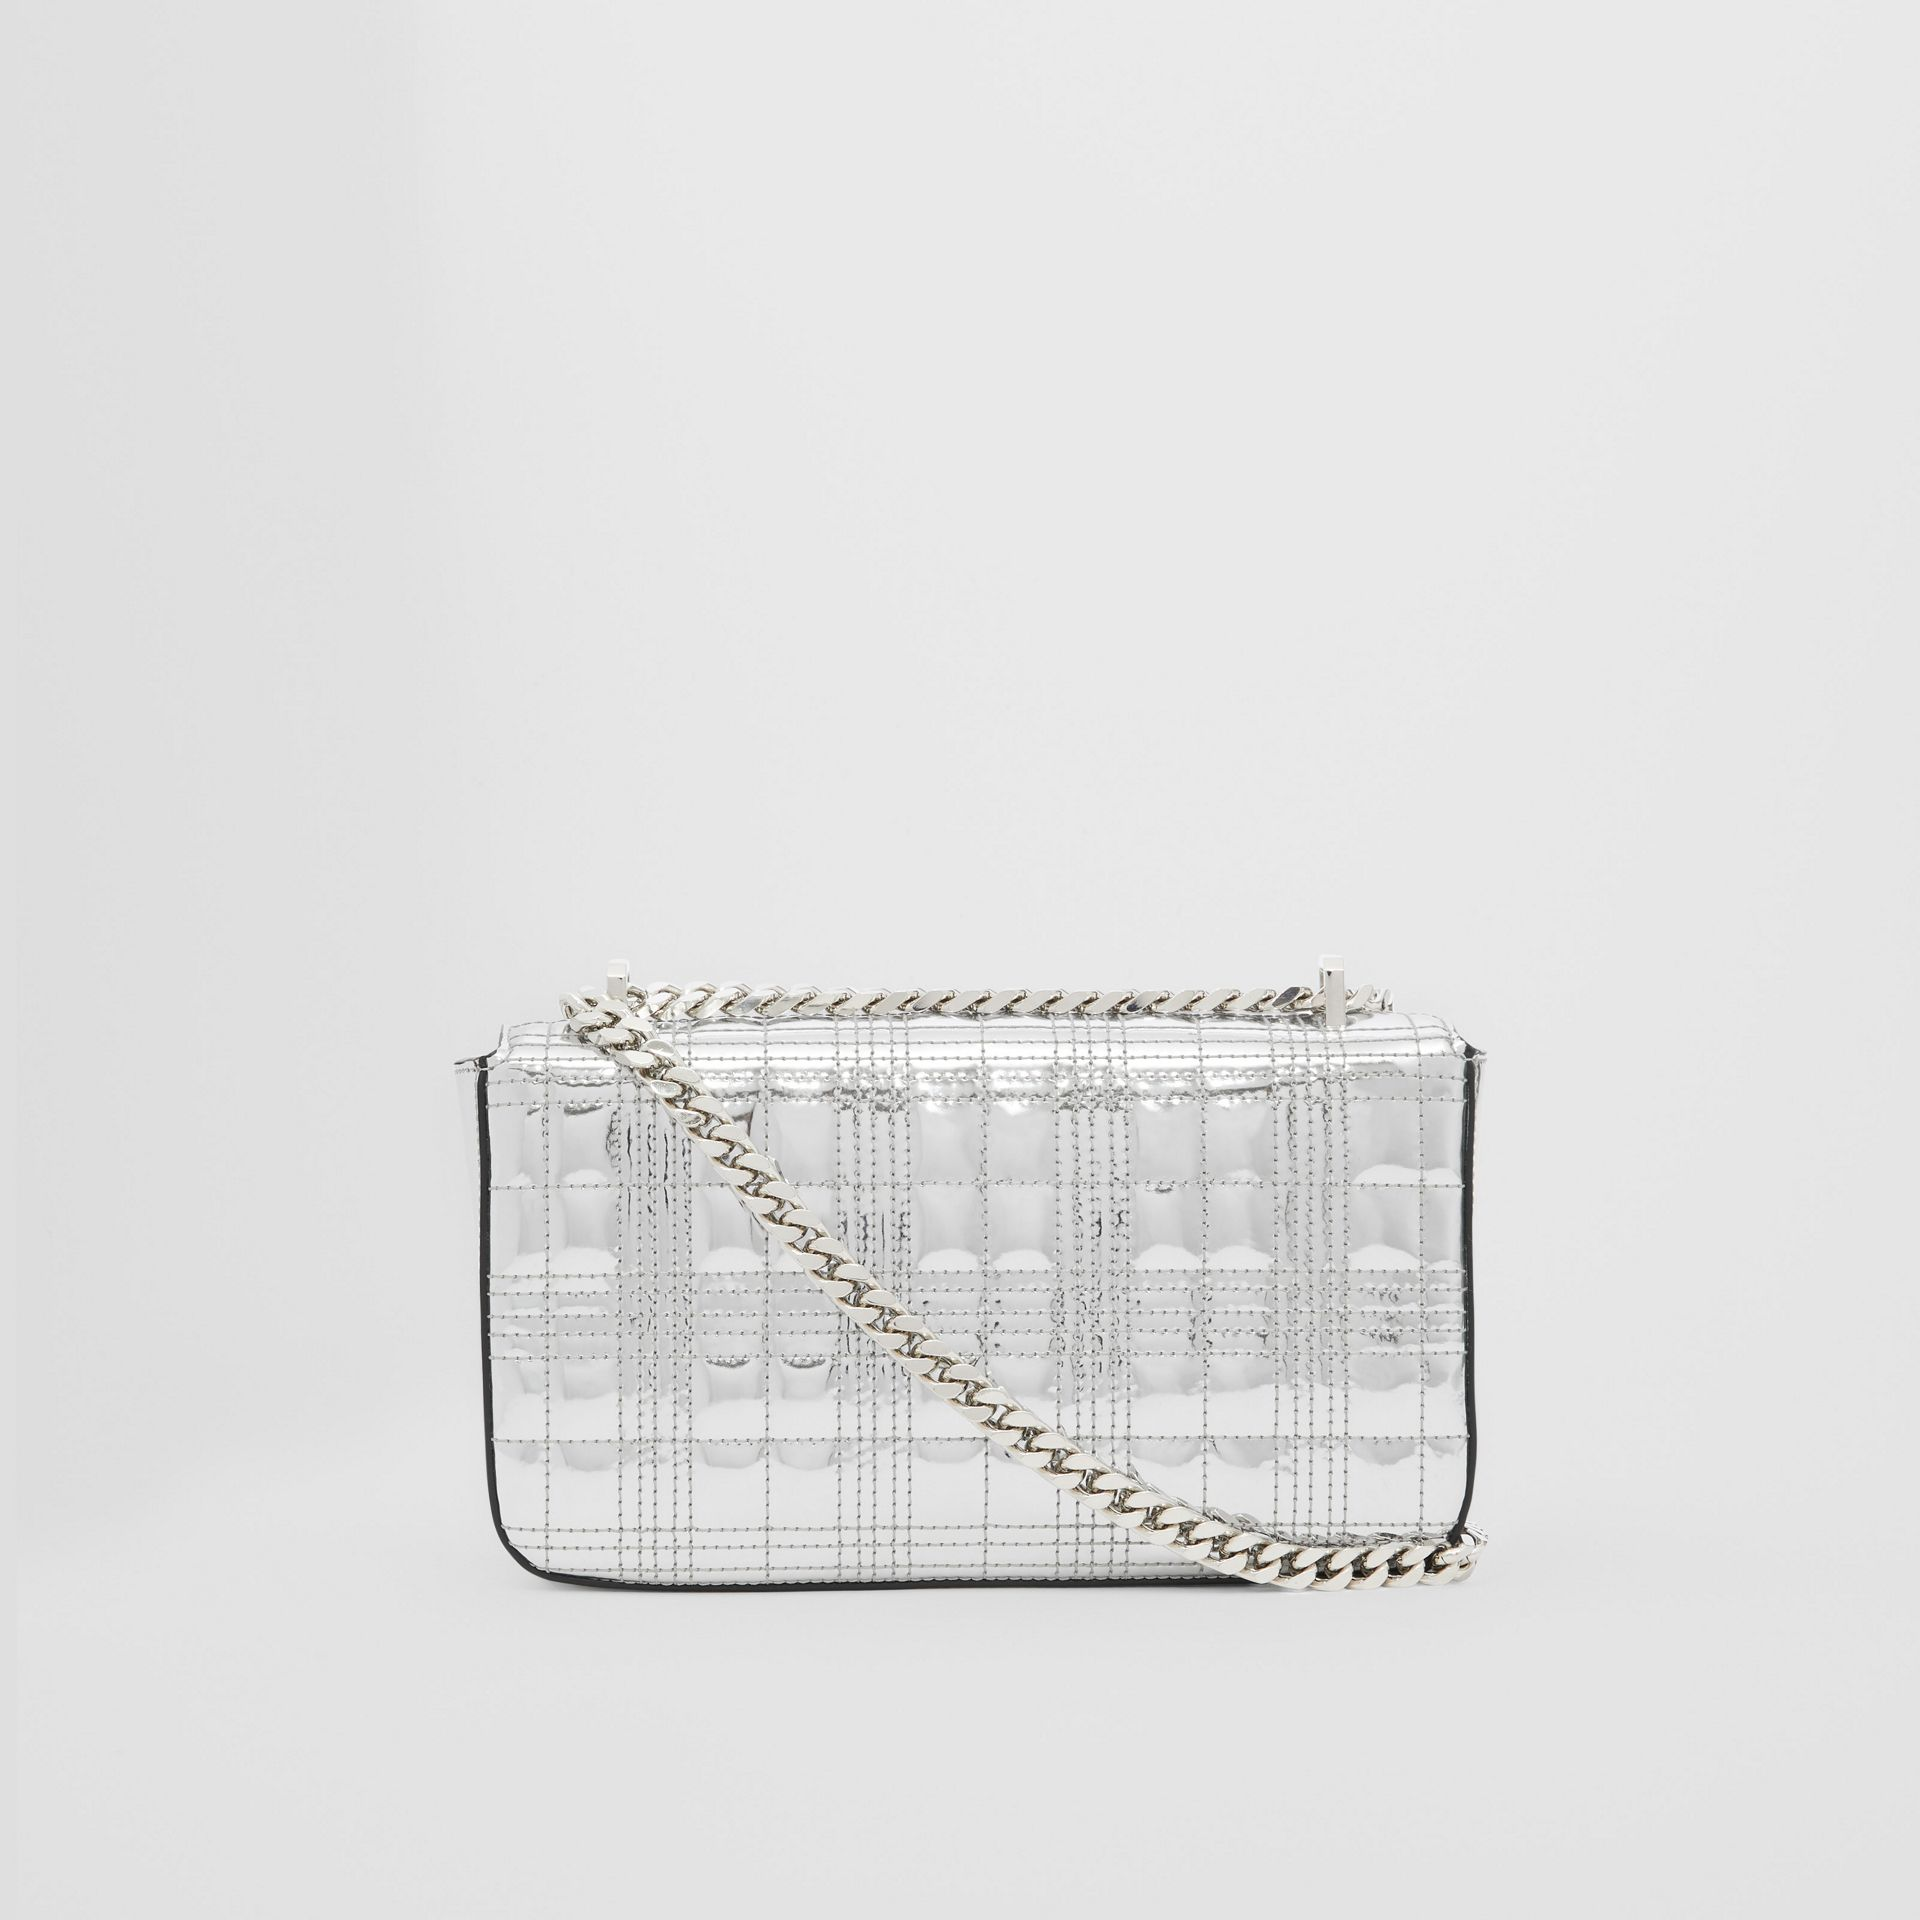 Small Quilted Metallic Leather Lola Bag in Silver - Women | Burberry United Kingdom - gallery image 5